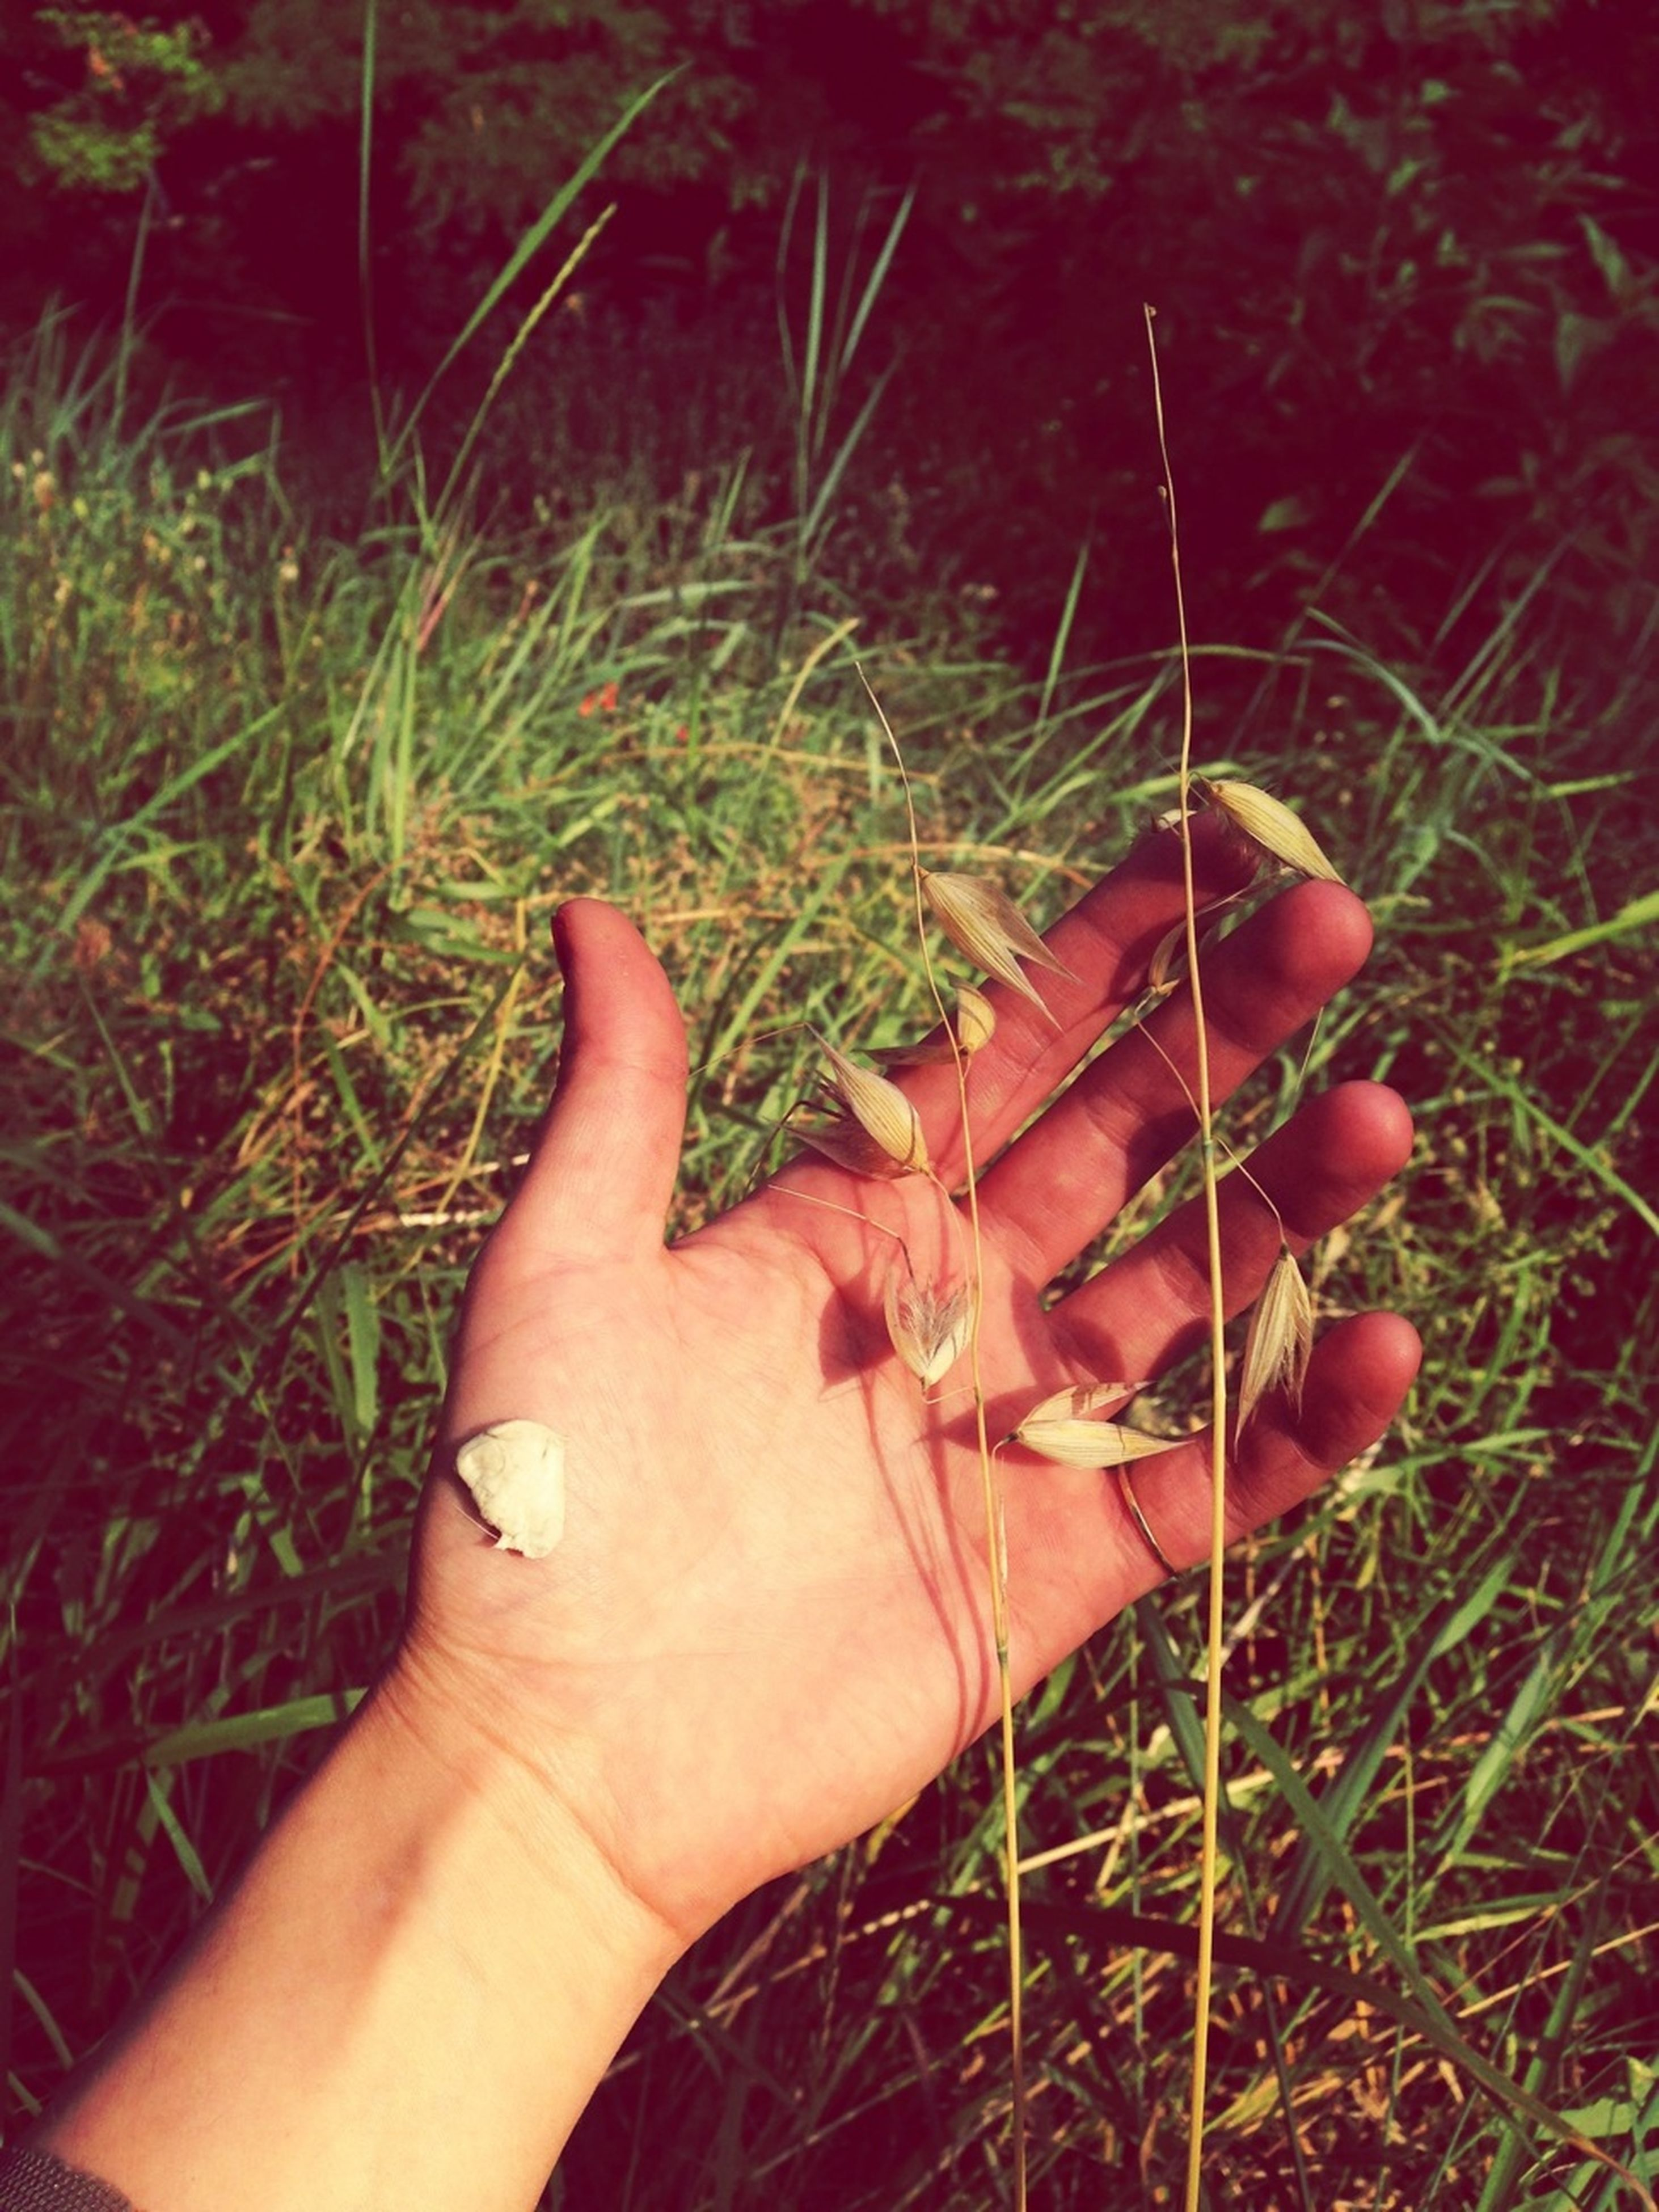 person, personal perspective, part of, holding, human finger, cropped, grass, unrecognizable person, close-up, lifestyles, leisure activity, field, plant, outdoors, focus on foreground, red